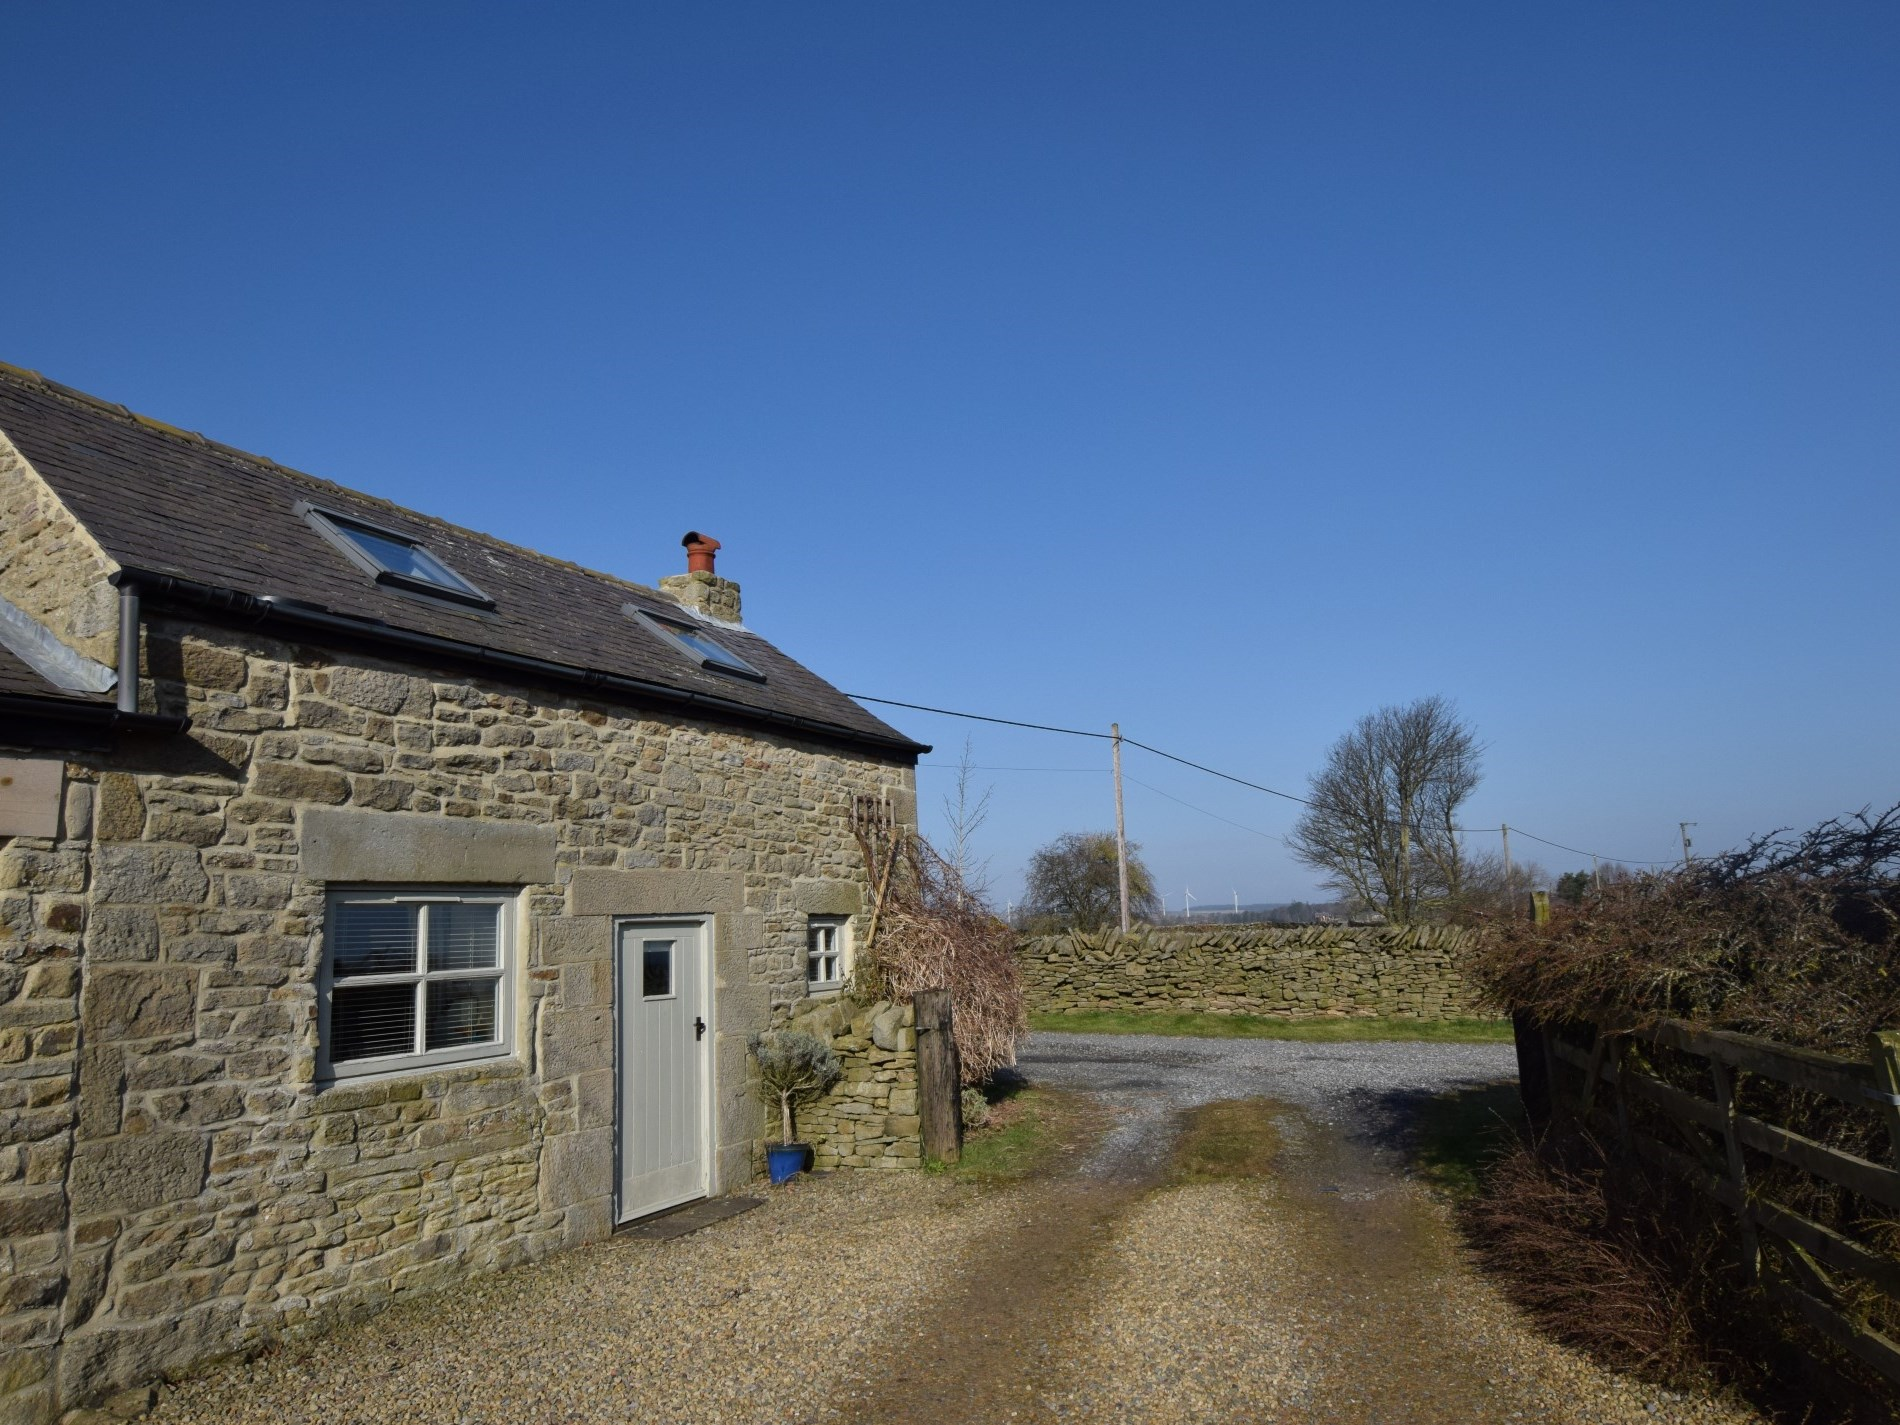 1 Bedroom Cottage in Consett, Northumbria